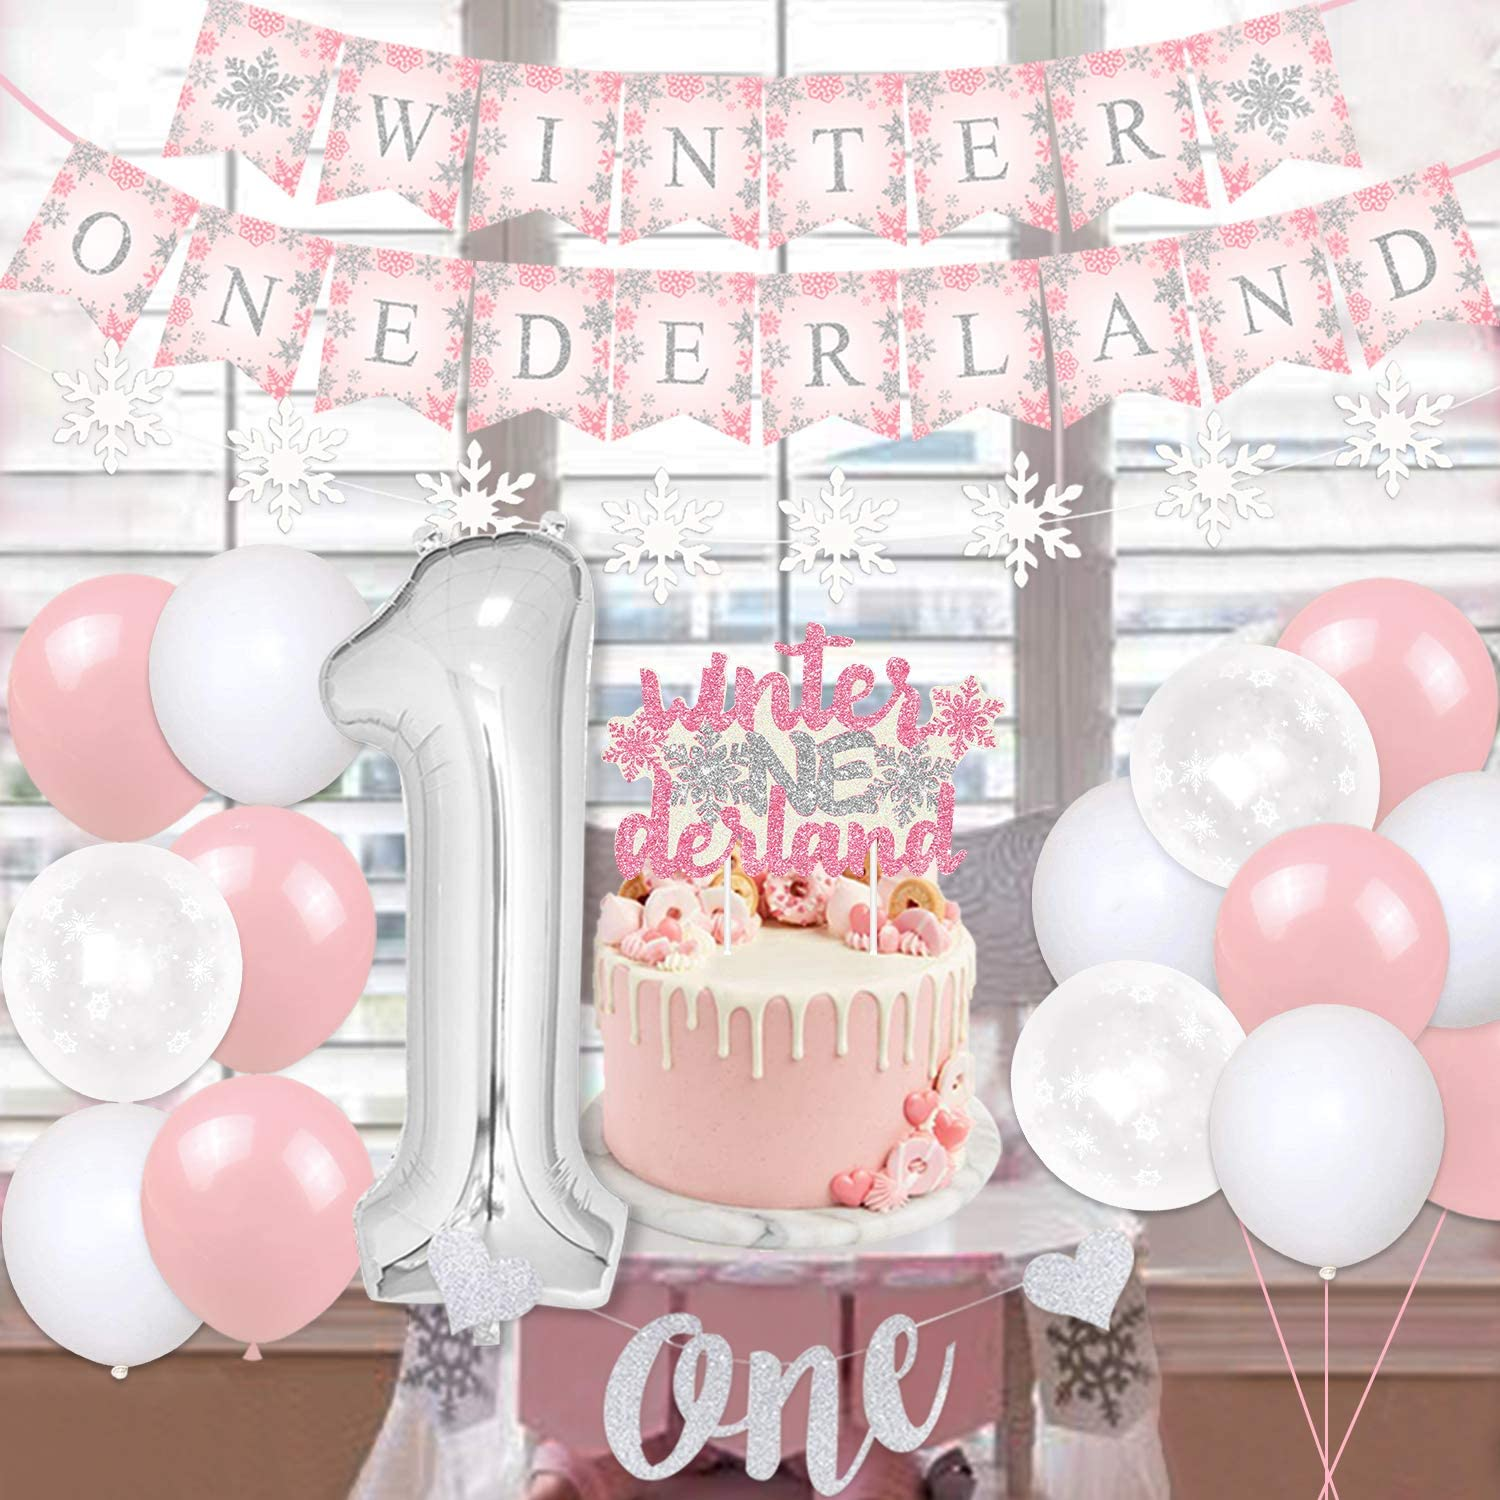 Winter Onederland 1st Birthday Decorations Winter Wonderland 1st Birthday Party Decorations For Girl Pink Snowflake Themed Party Supplies Onederland Banner Cake Topper Walmart Canada